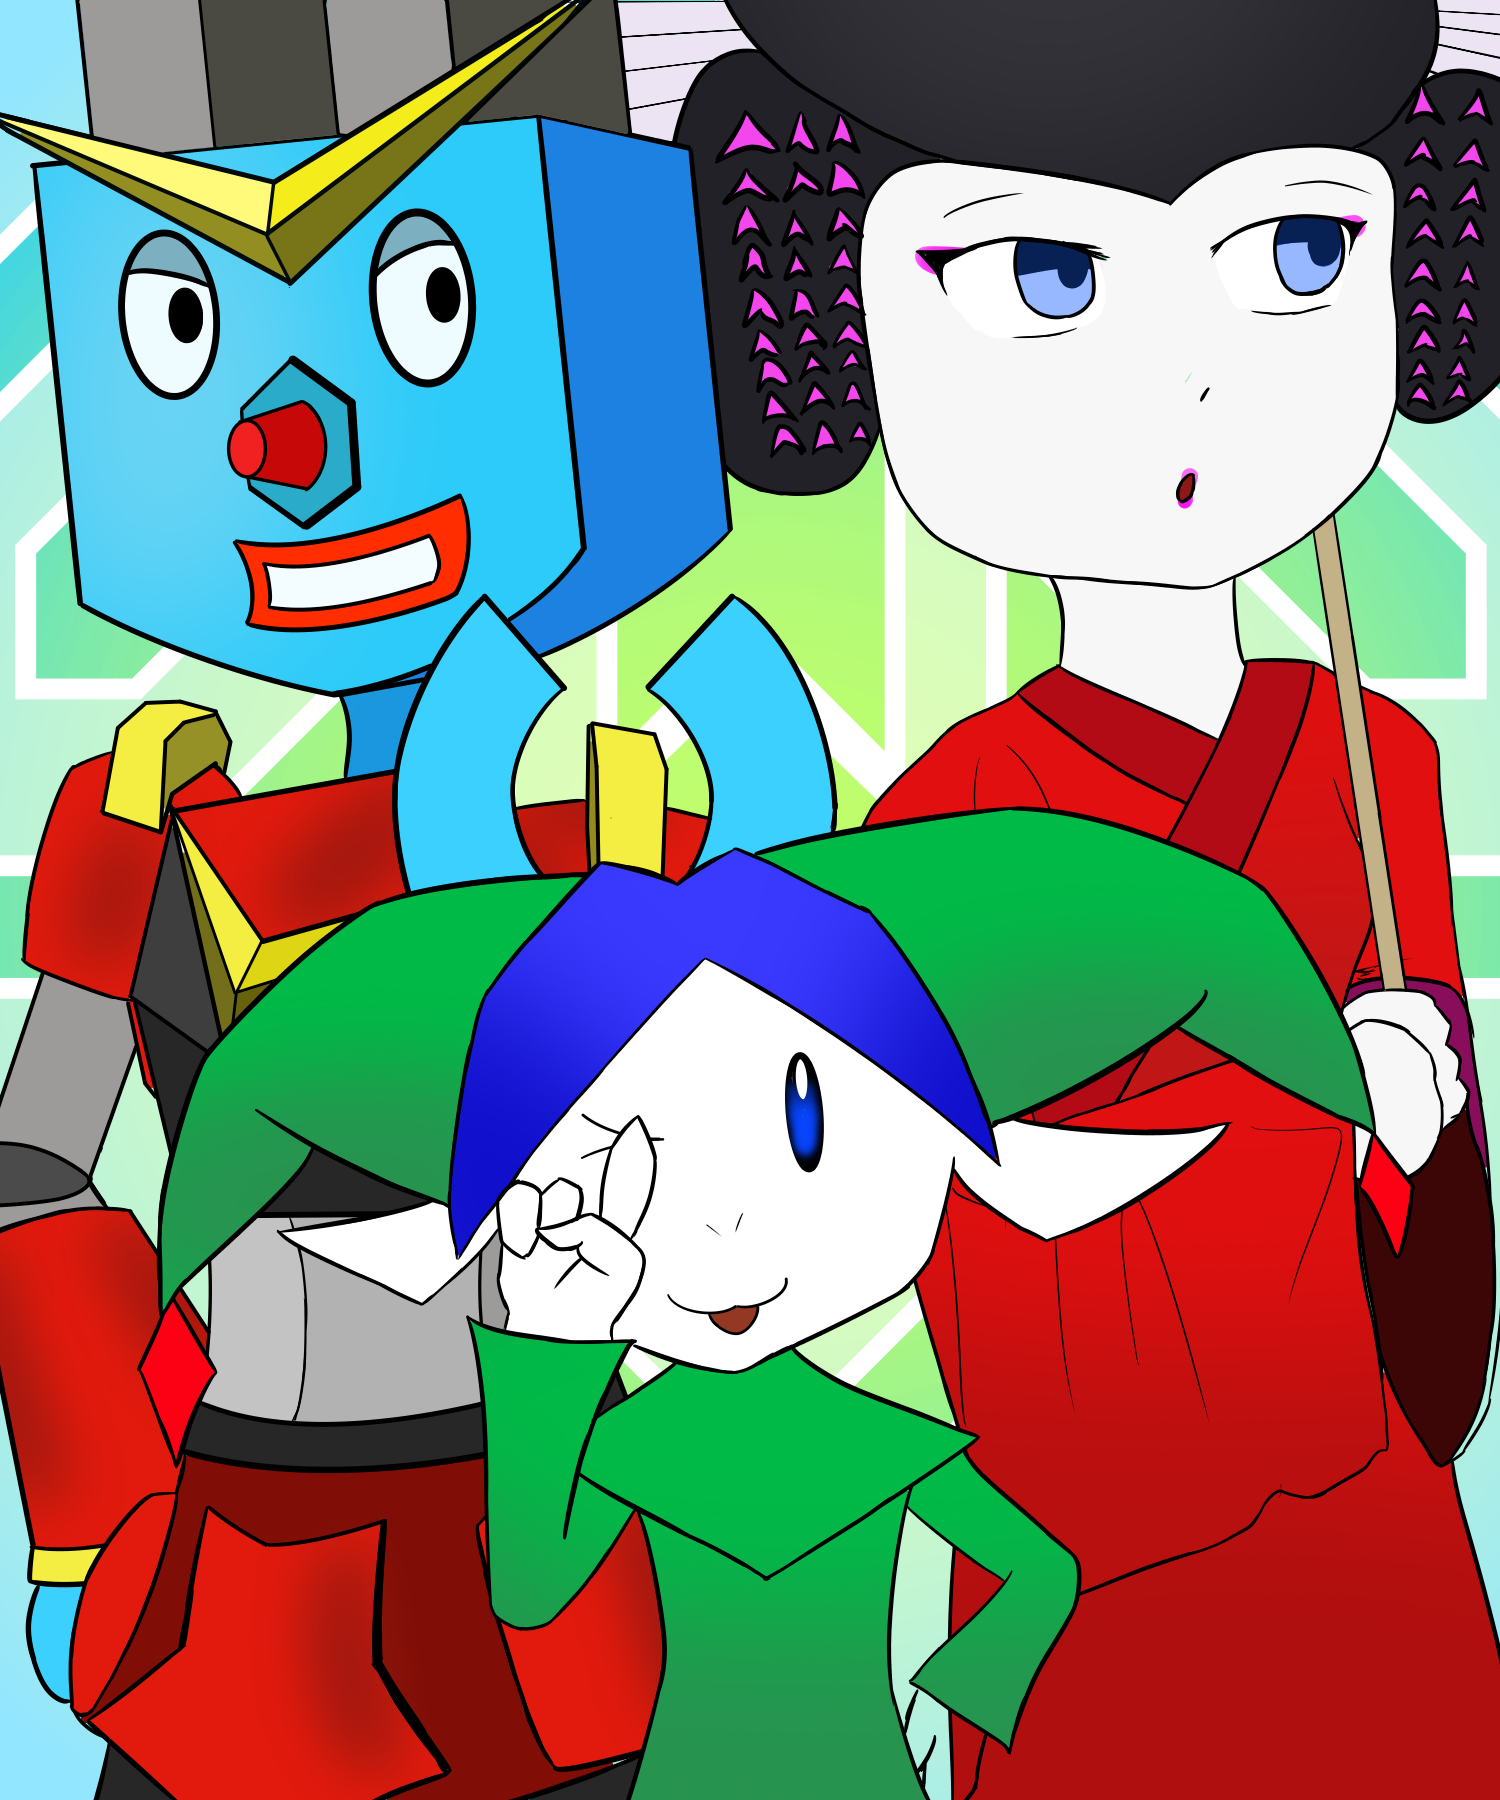 http://orig02.deviantart.net/20c7/f/2016/101/1/c/ddr_non_human_characters_by_coddry-d9yeqt2.png